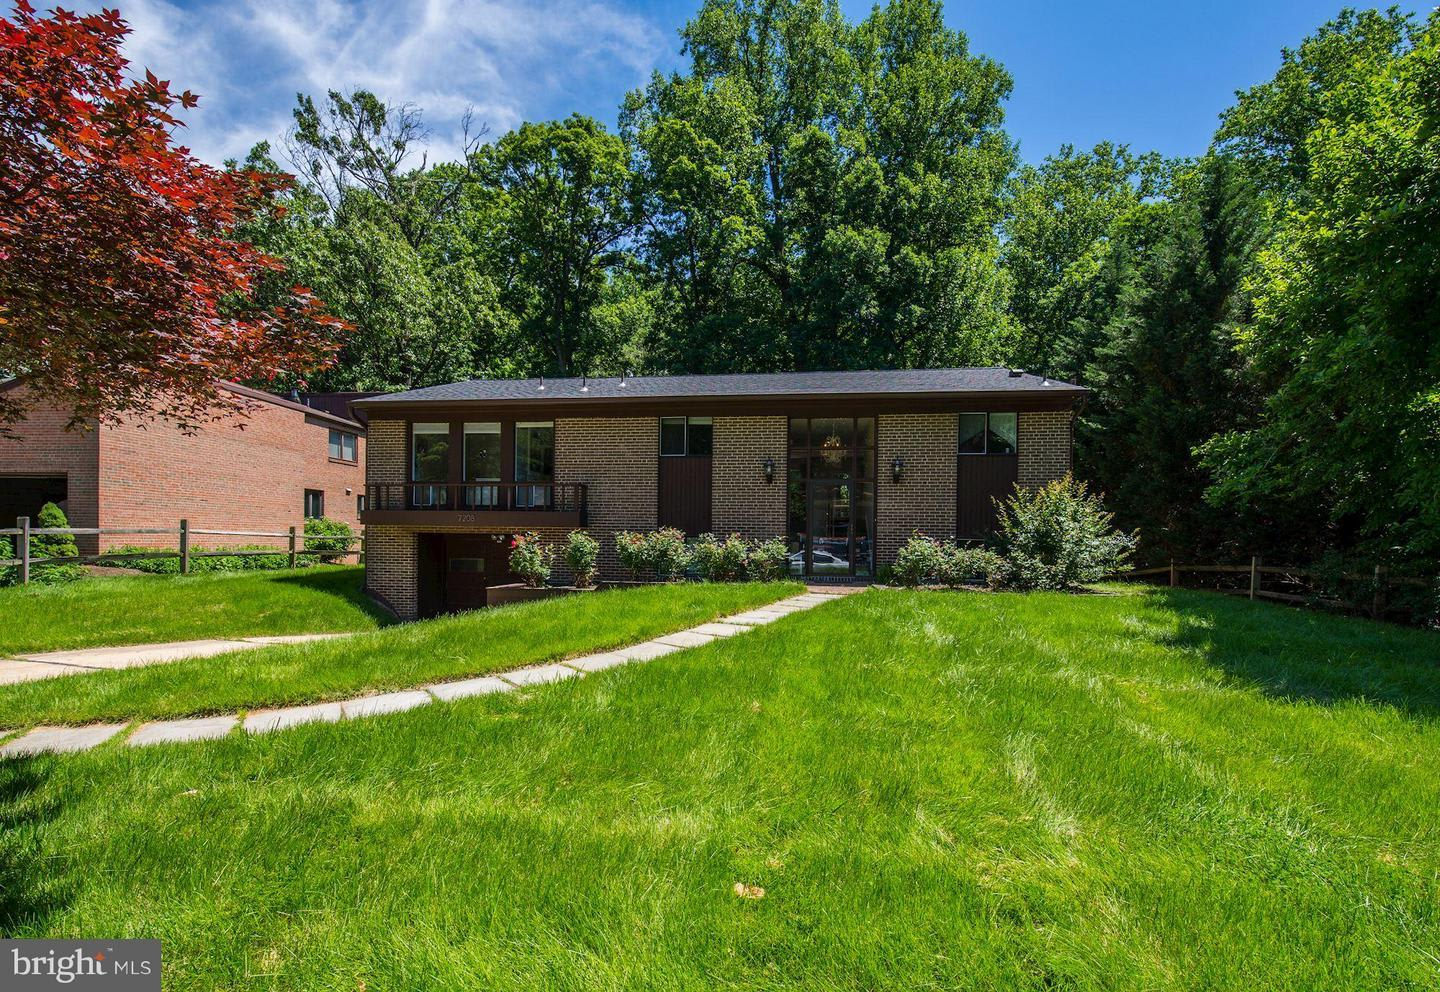 7208 Grubby Thicket Way photo